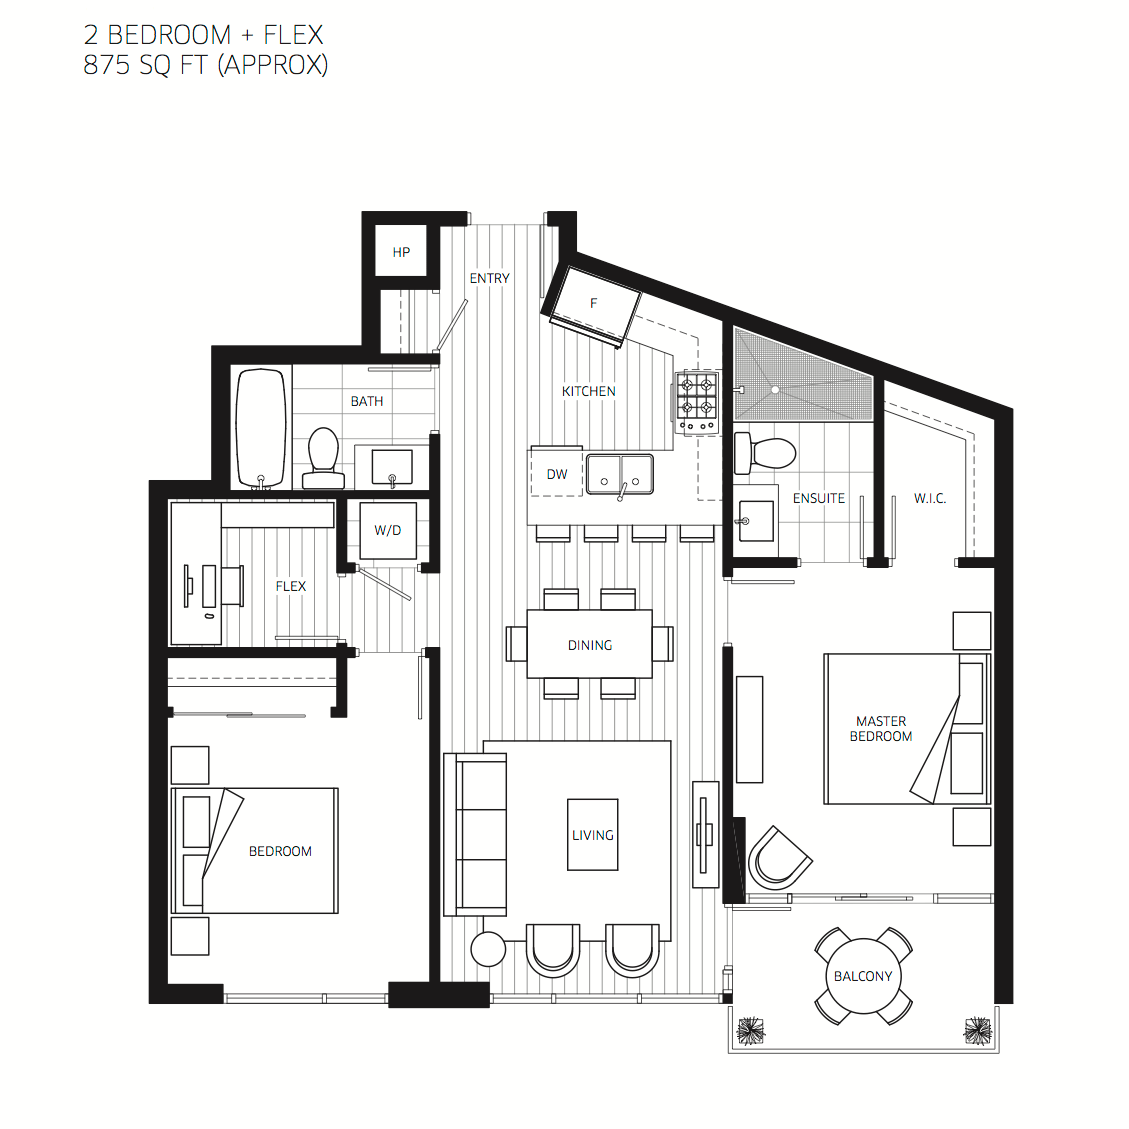 2 Bedroom With 2 Bathroom And Balcony House Plans 2D Layout (Image 1 of 17)